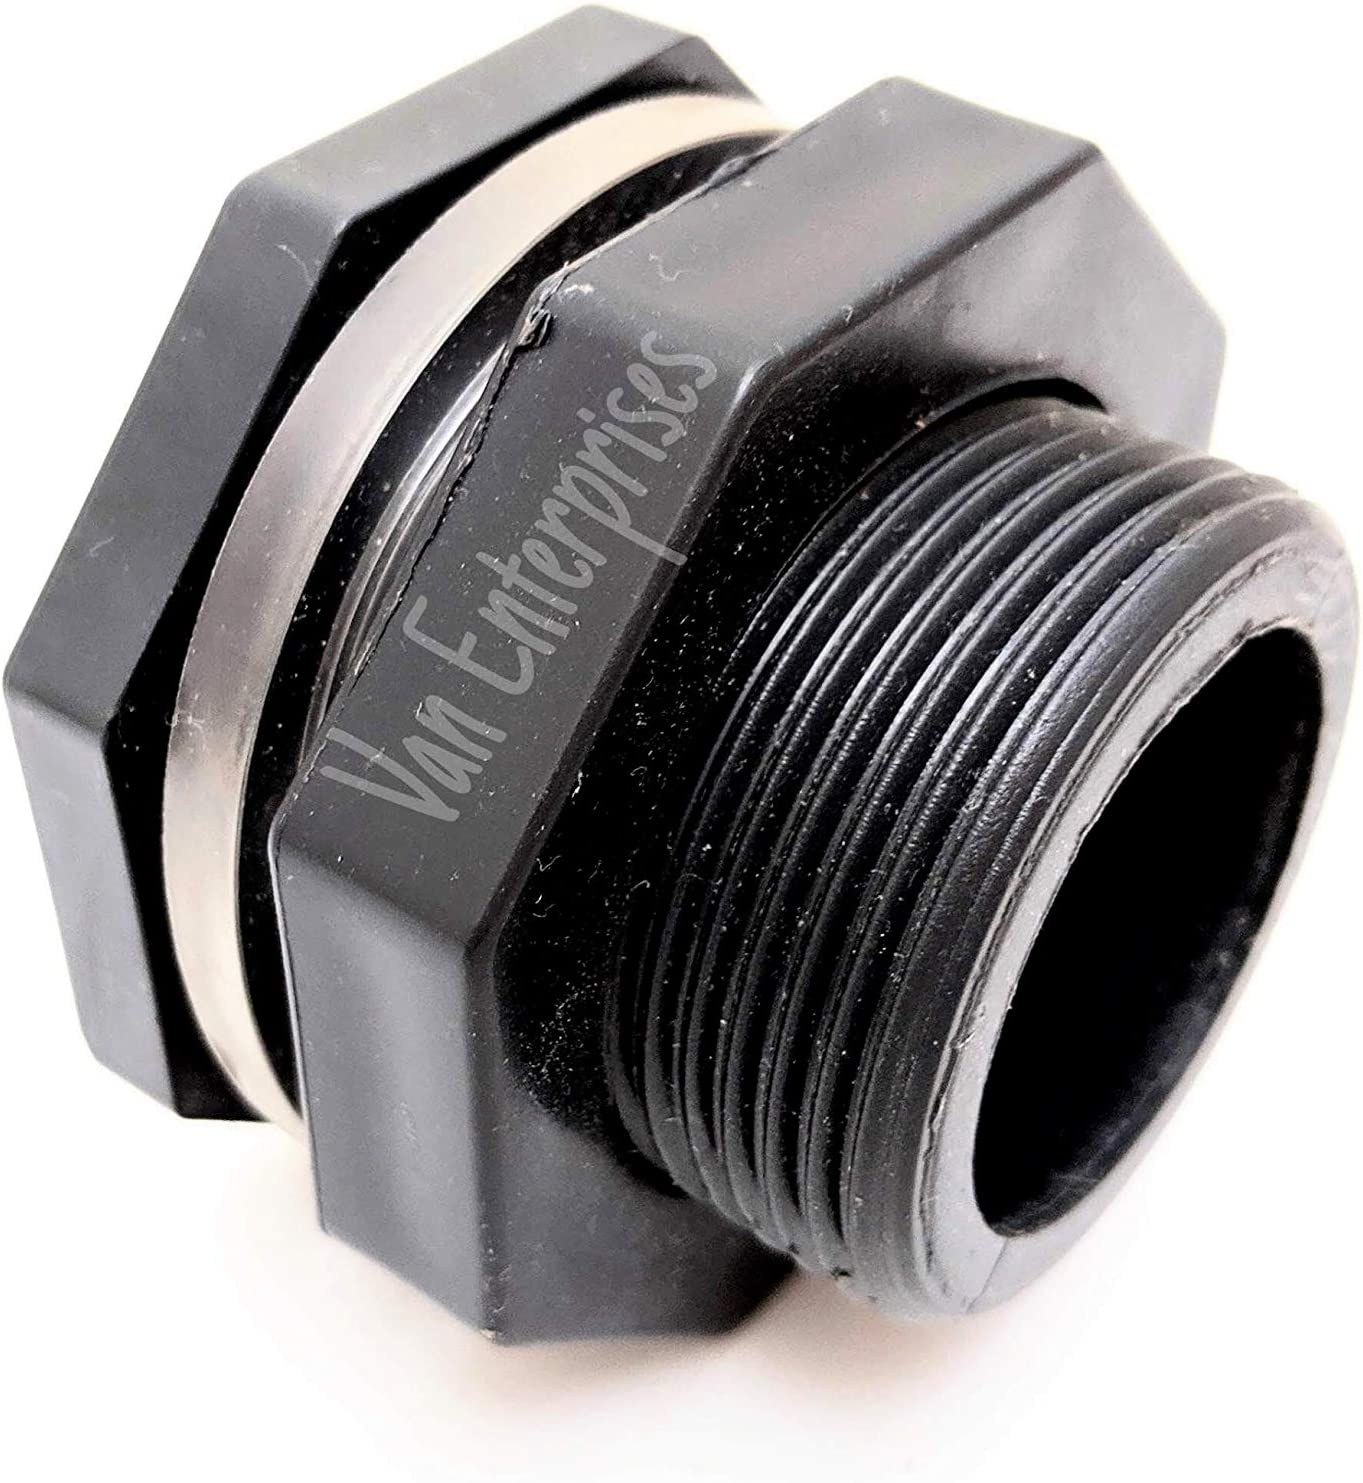 "1"" PRO SERIES HD Bulkhead [SOCKET ENDS] for Rain Barrels, Aquariums, Aquaponics, Water Tanks 81r4A2BW9jUL"